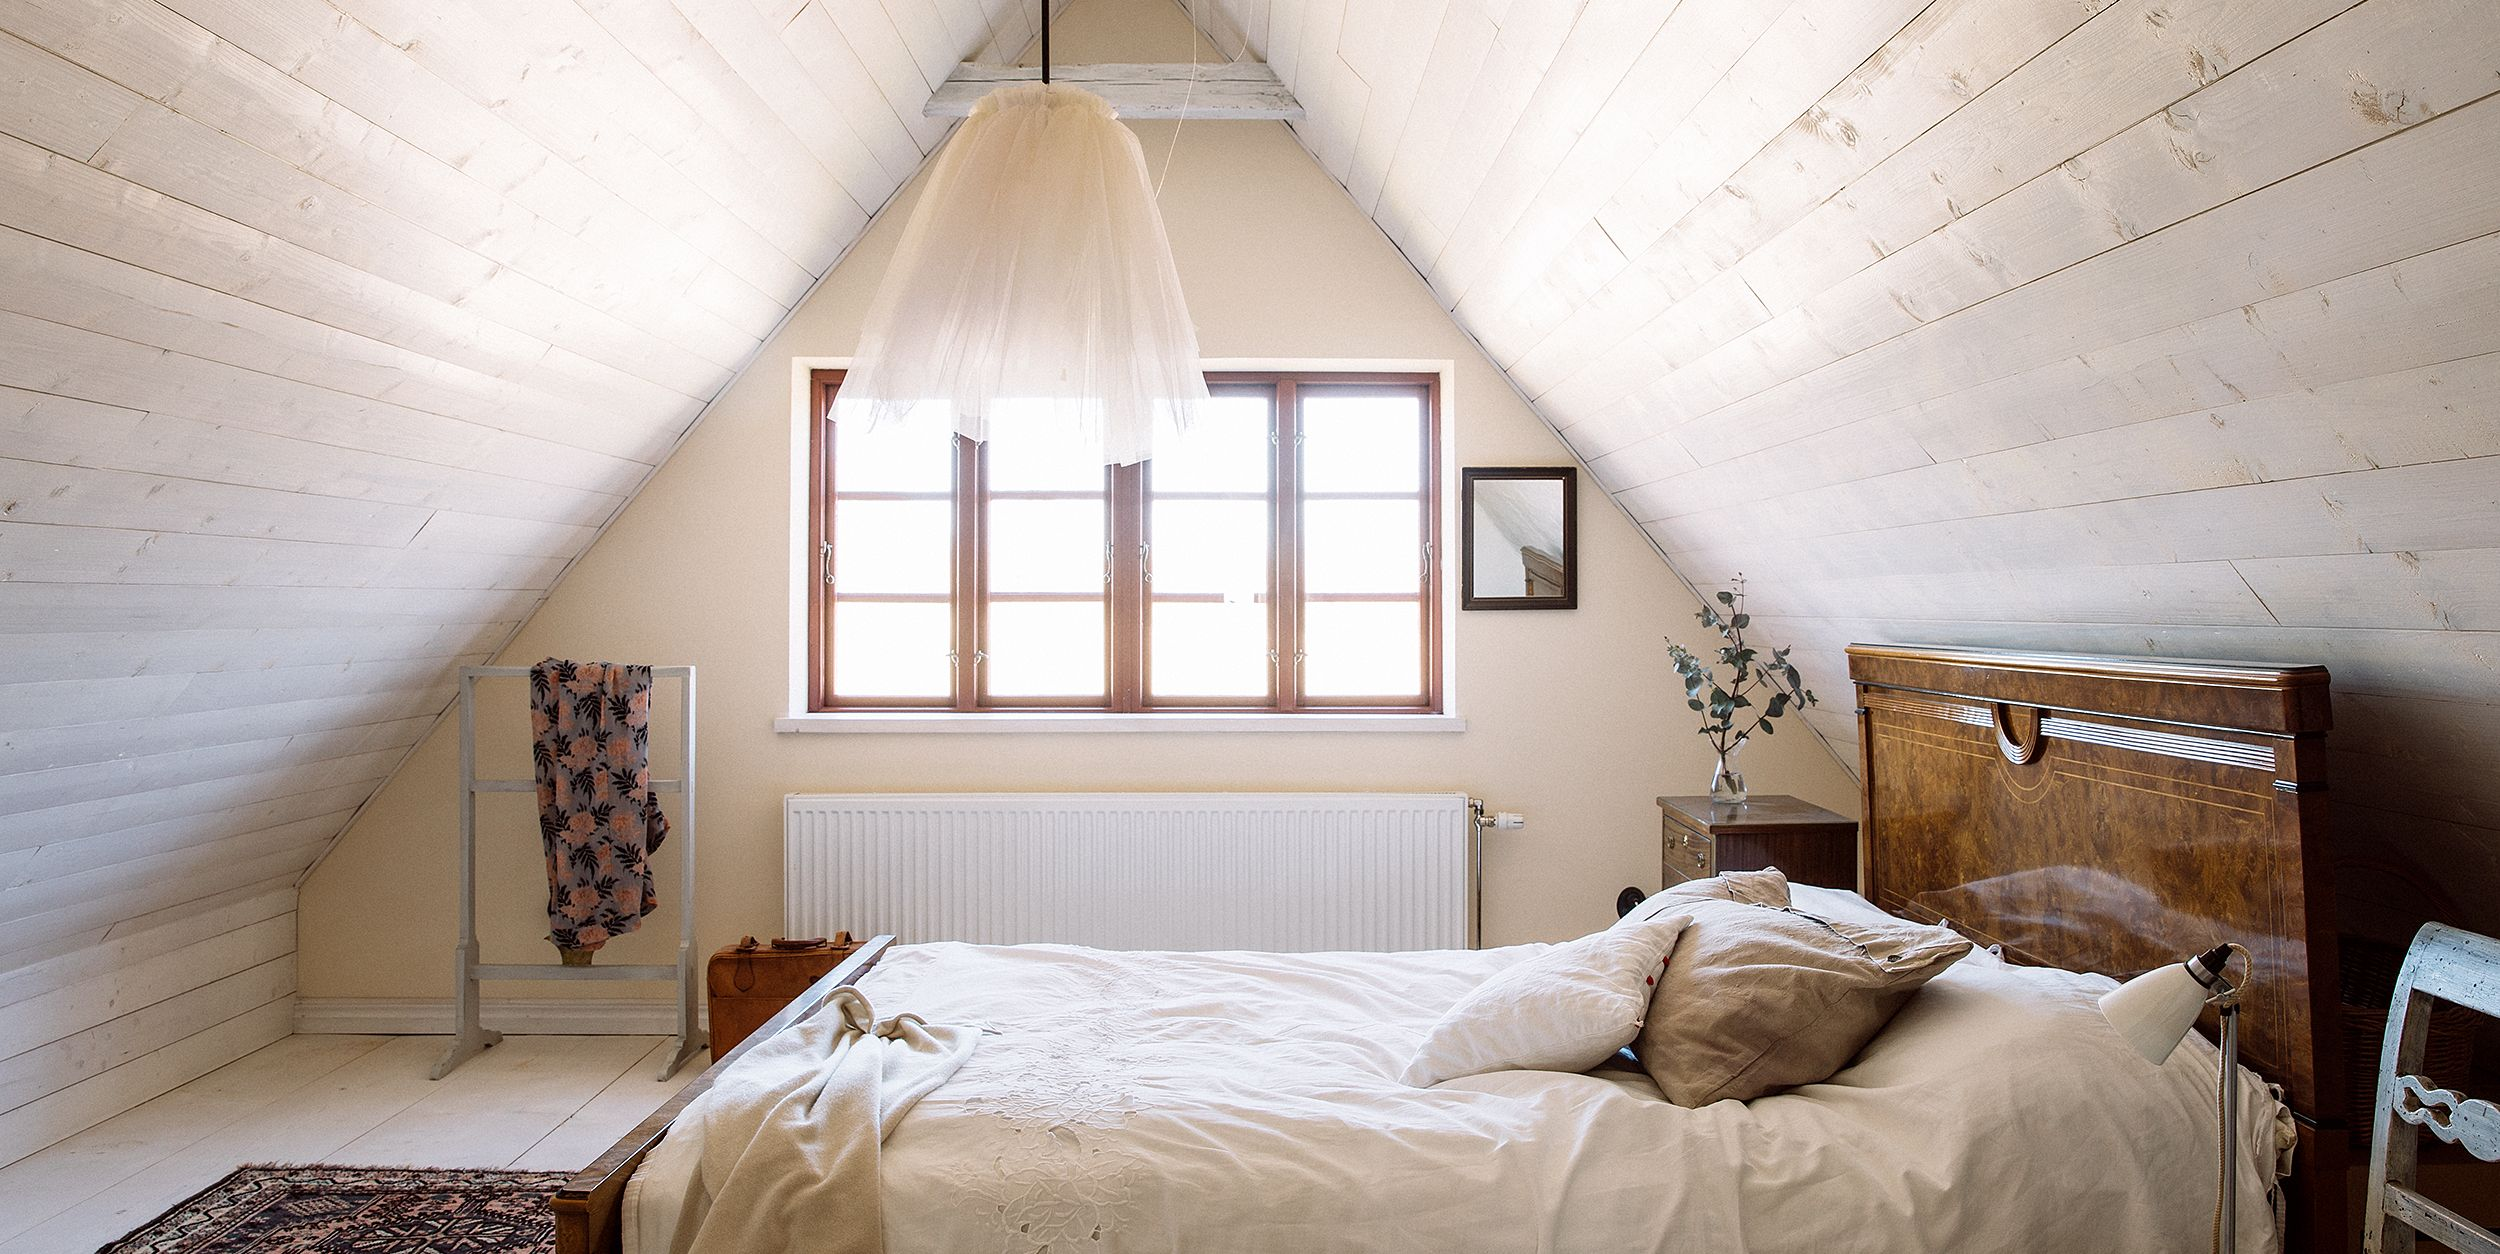 Bedroom Attractive And Functional Attic Bedroom Design: Sloped Ceiling Design Ideas